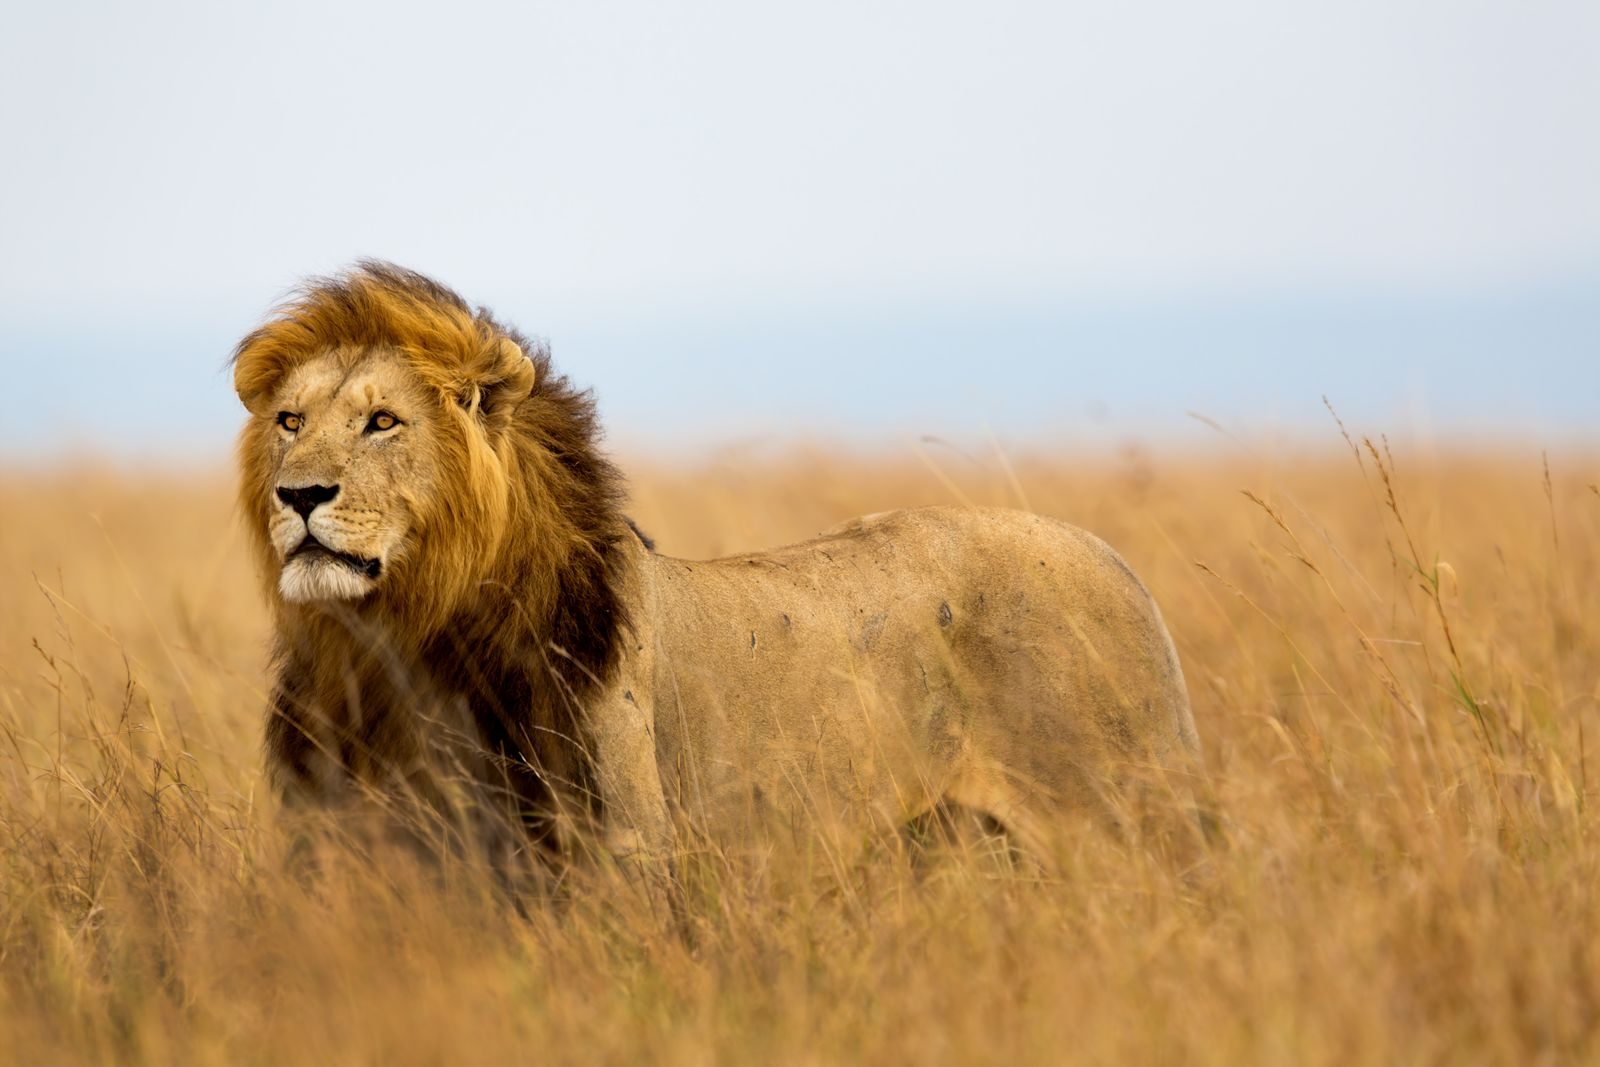 Mighty Lion watching the lionesses